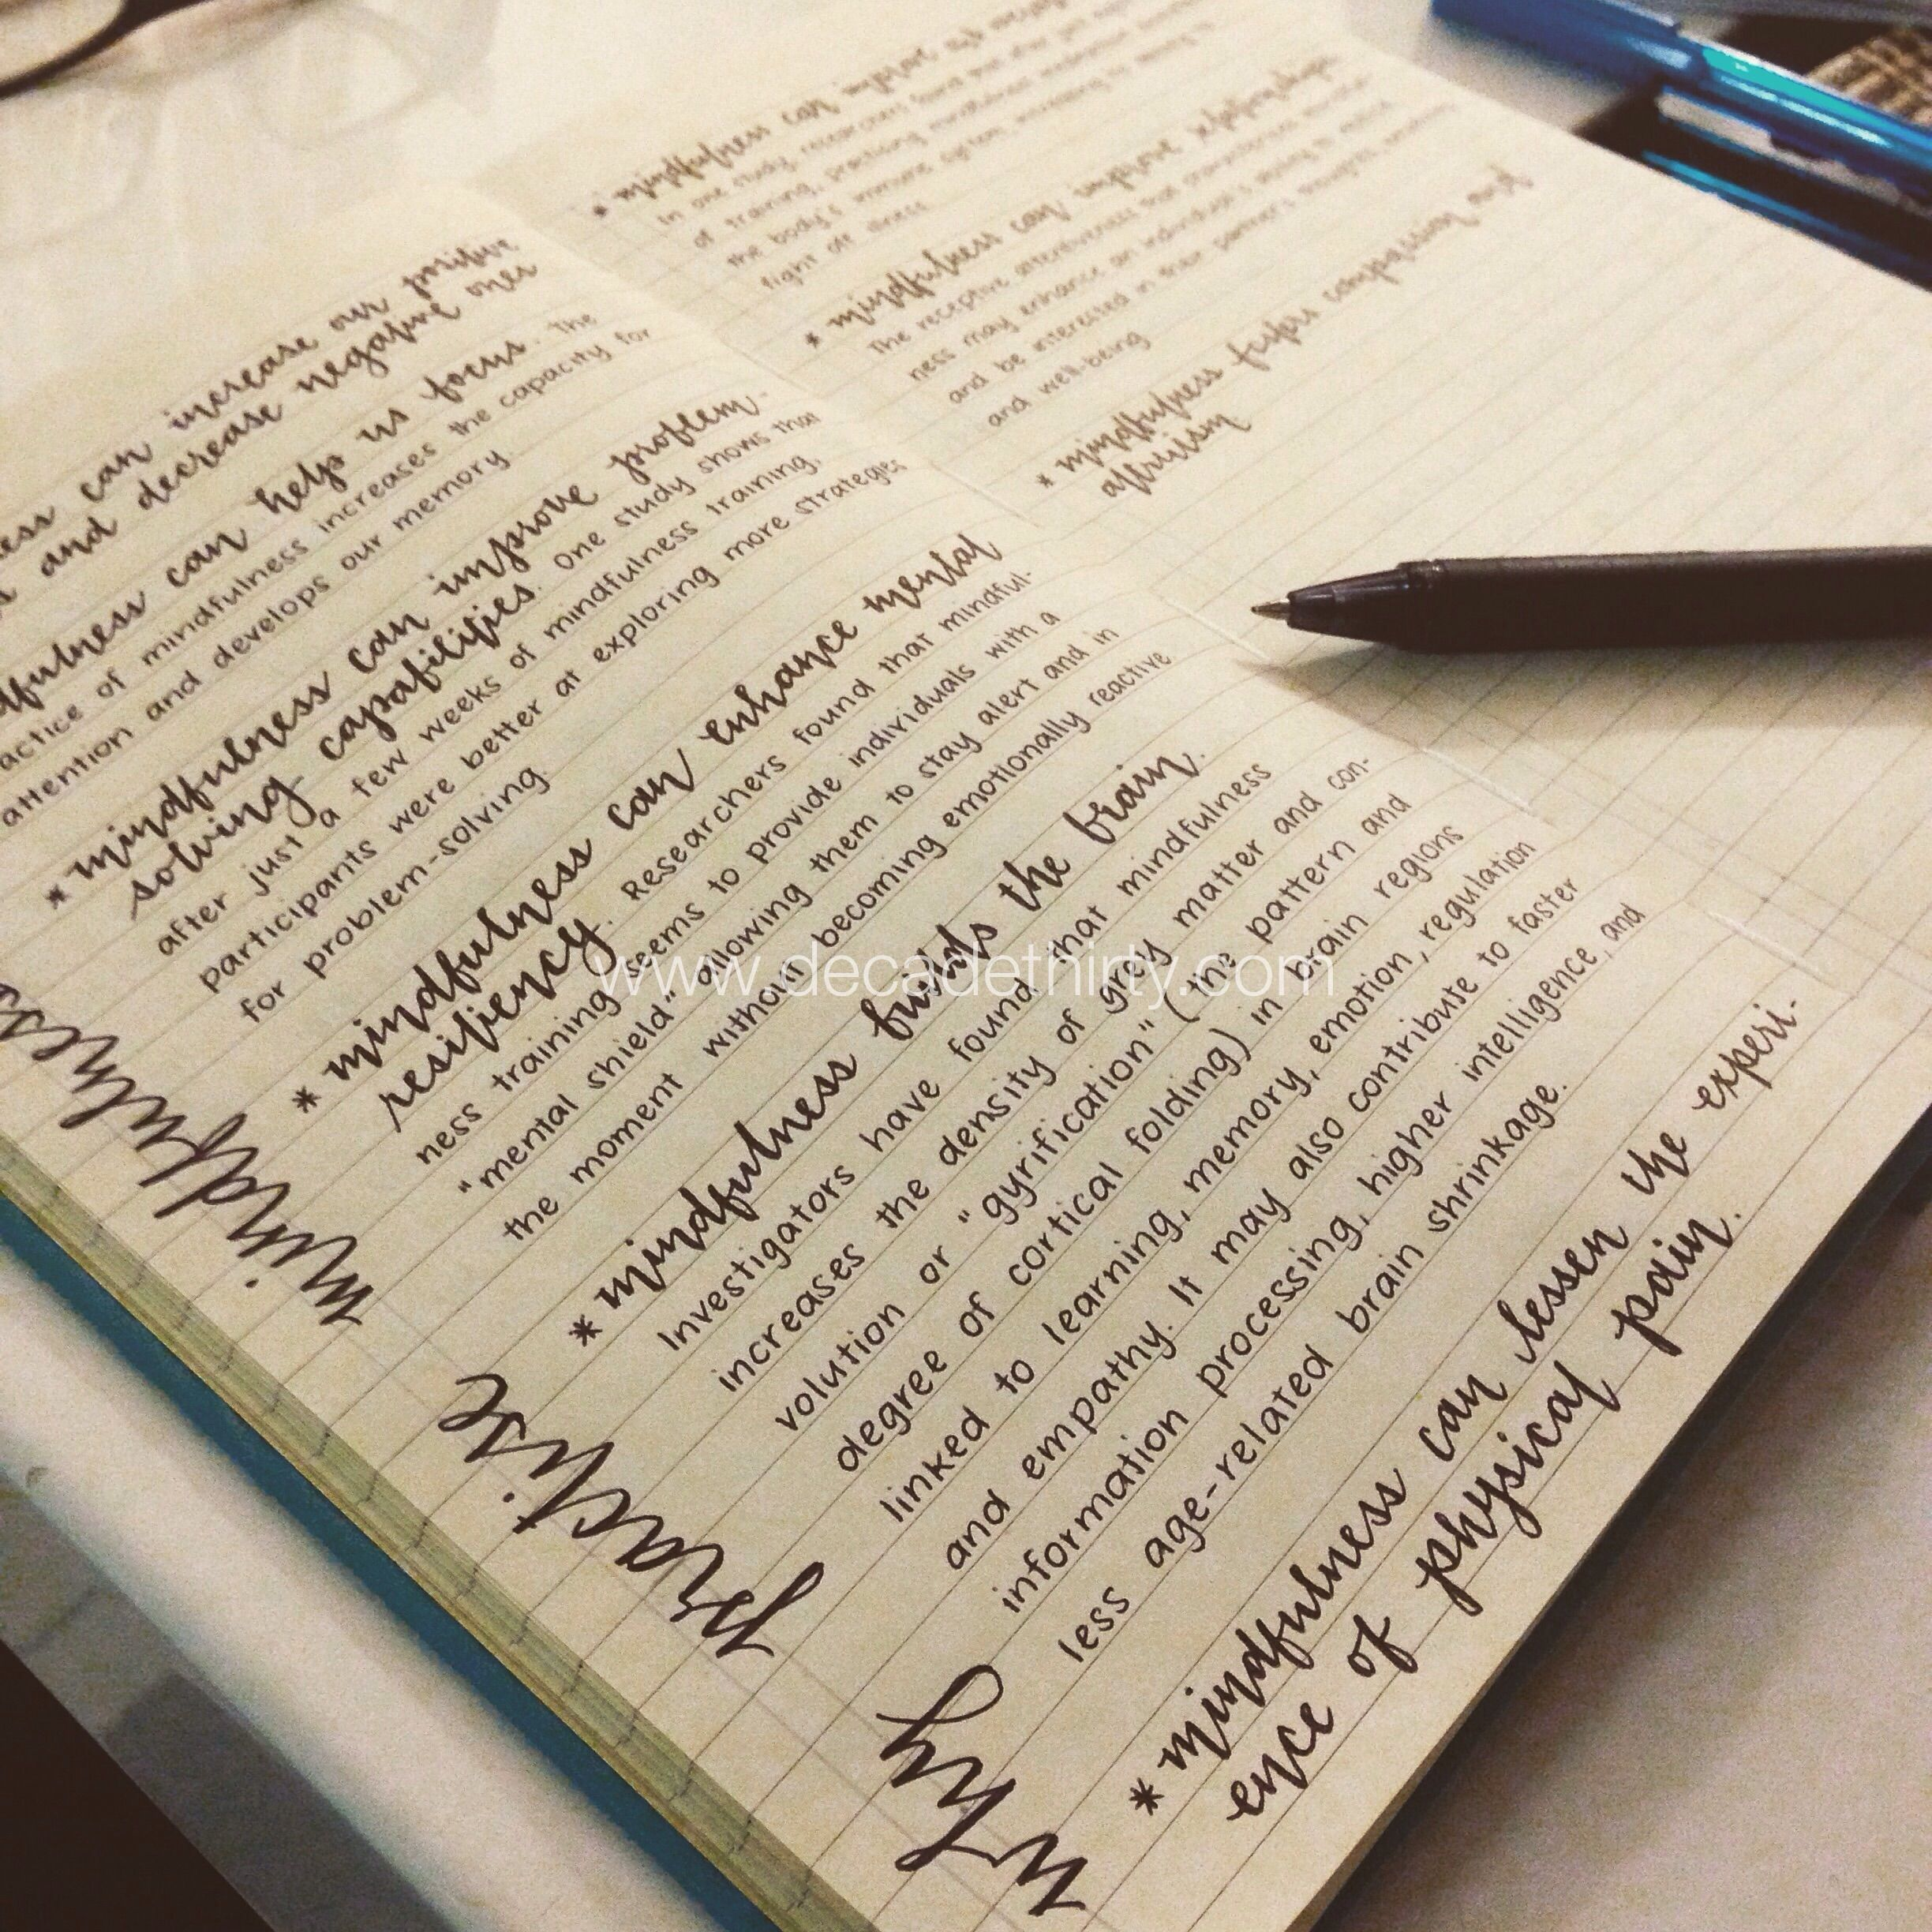 Neat. I like the journaling / neat ideas pages :)